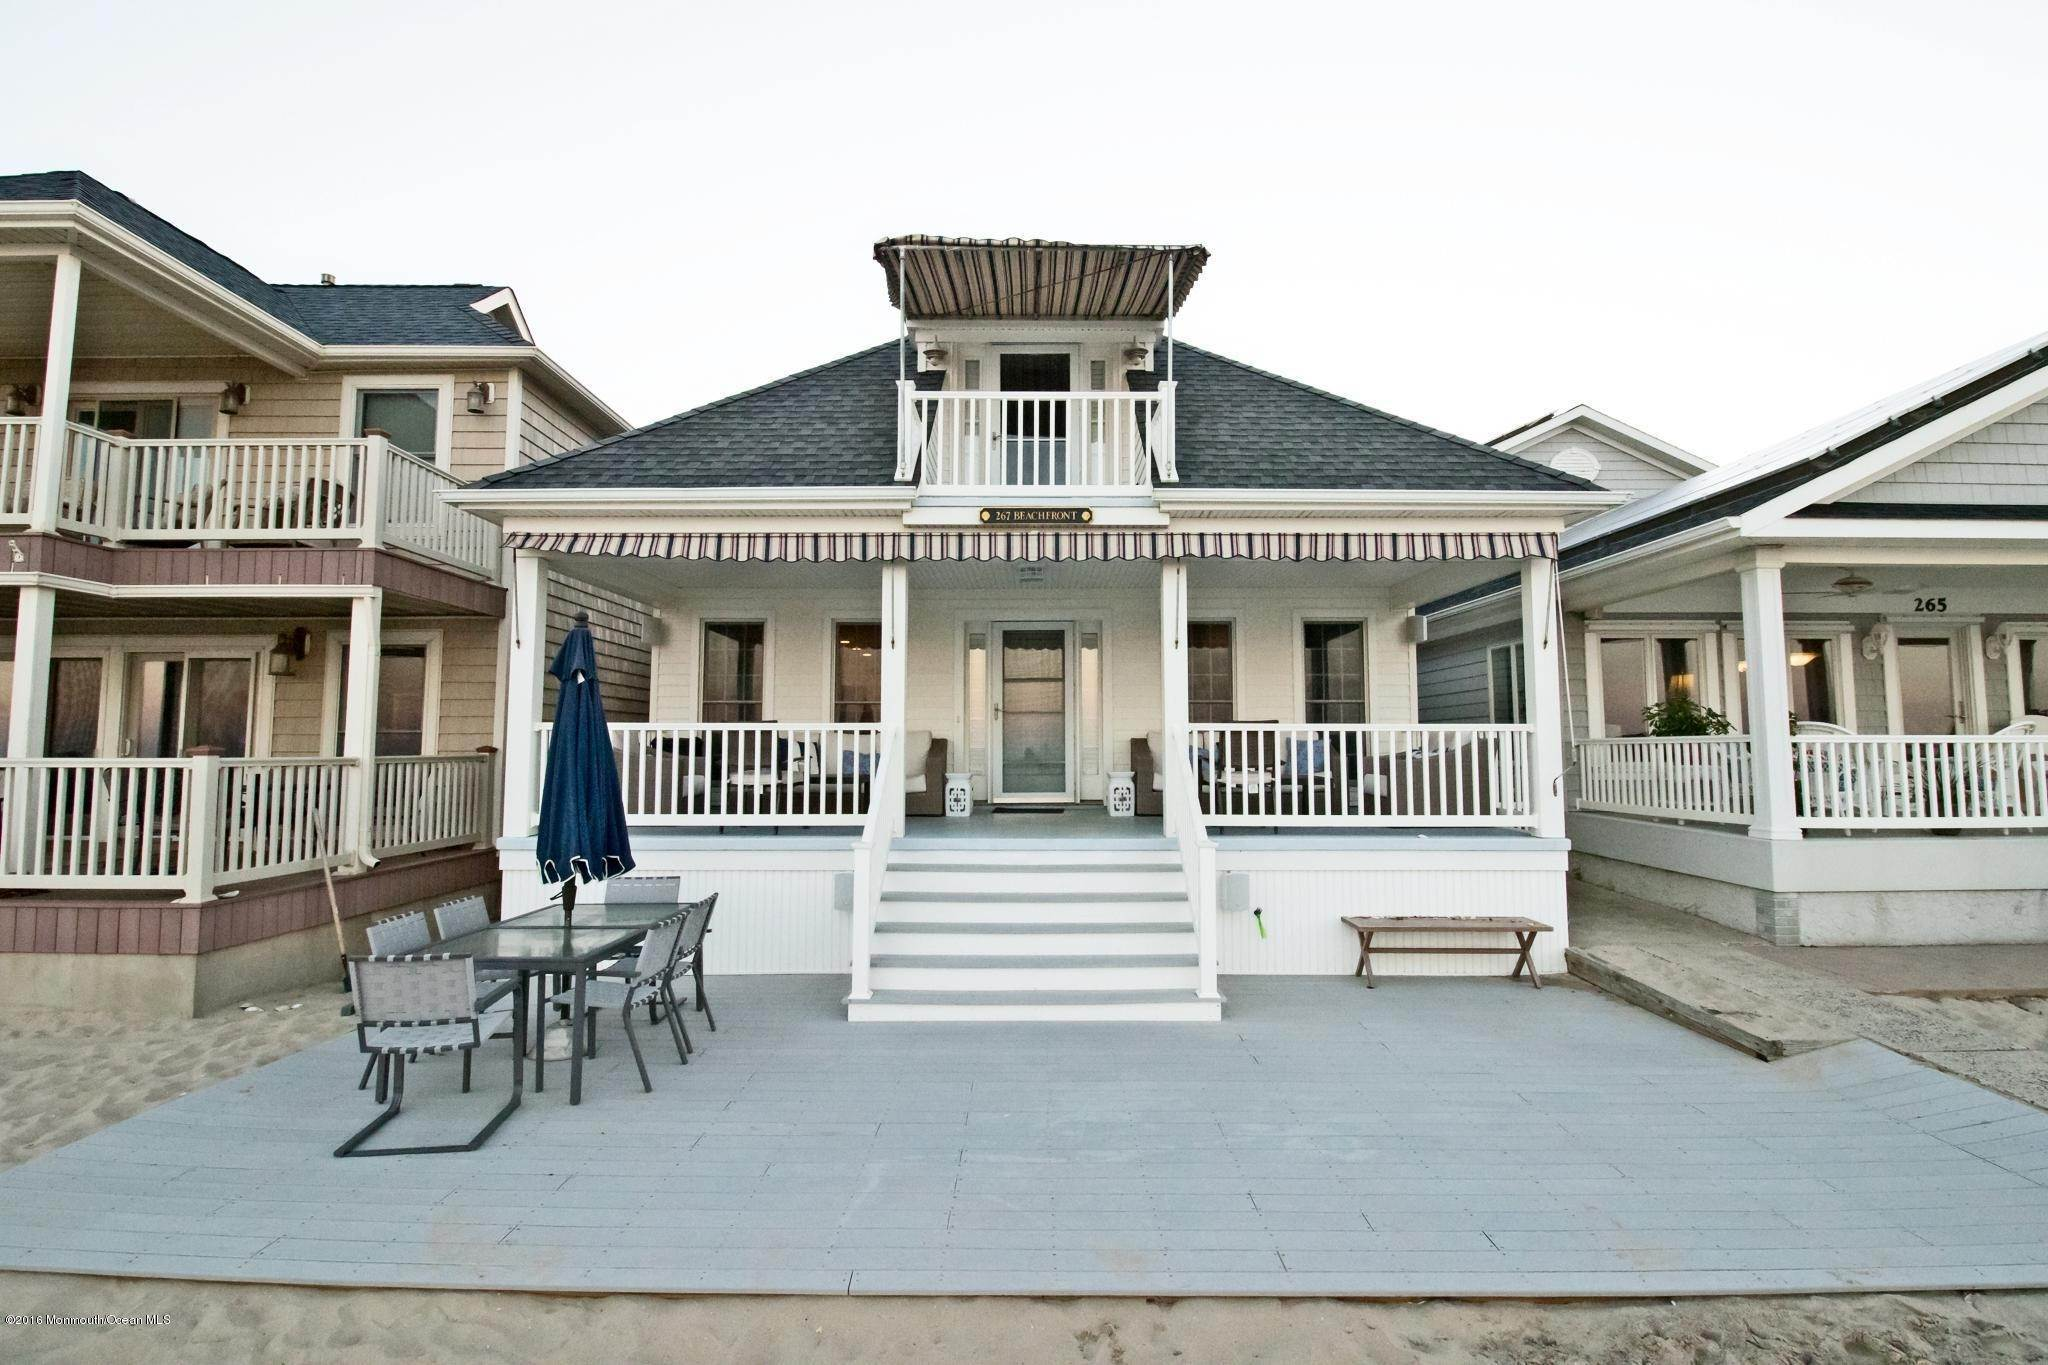 Single Family Home for Rent at 267 Beach Front Manasquan, New Jersey,08736 United States